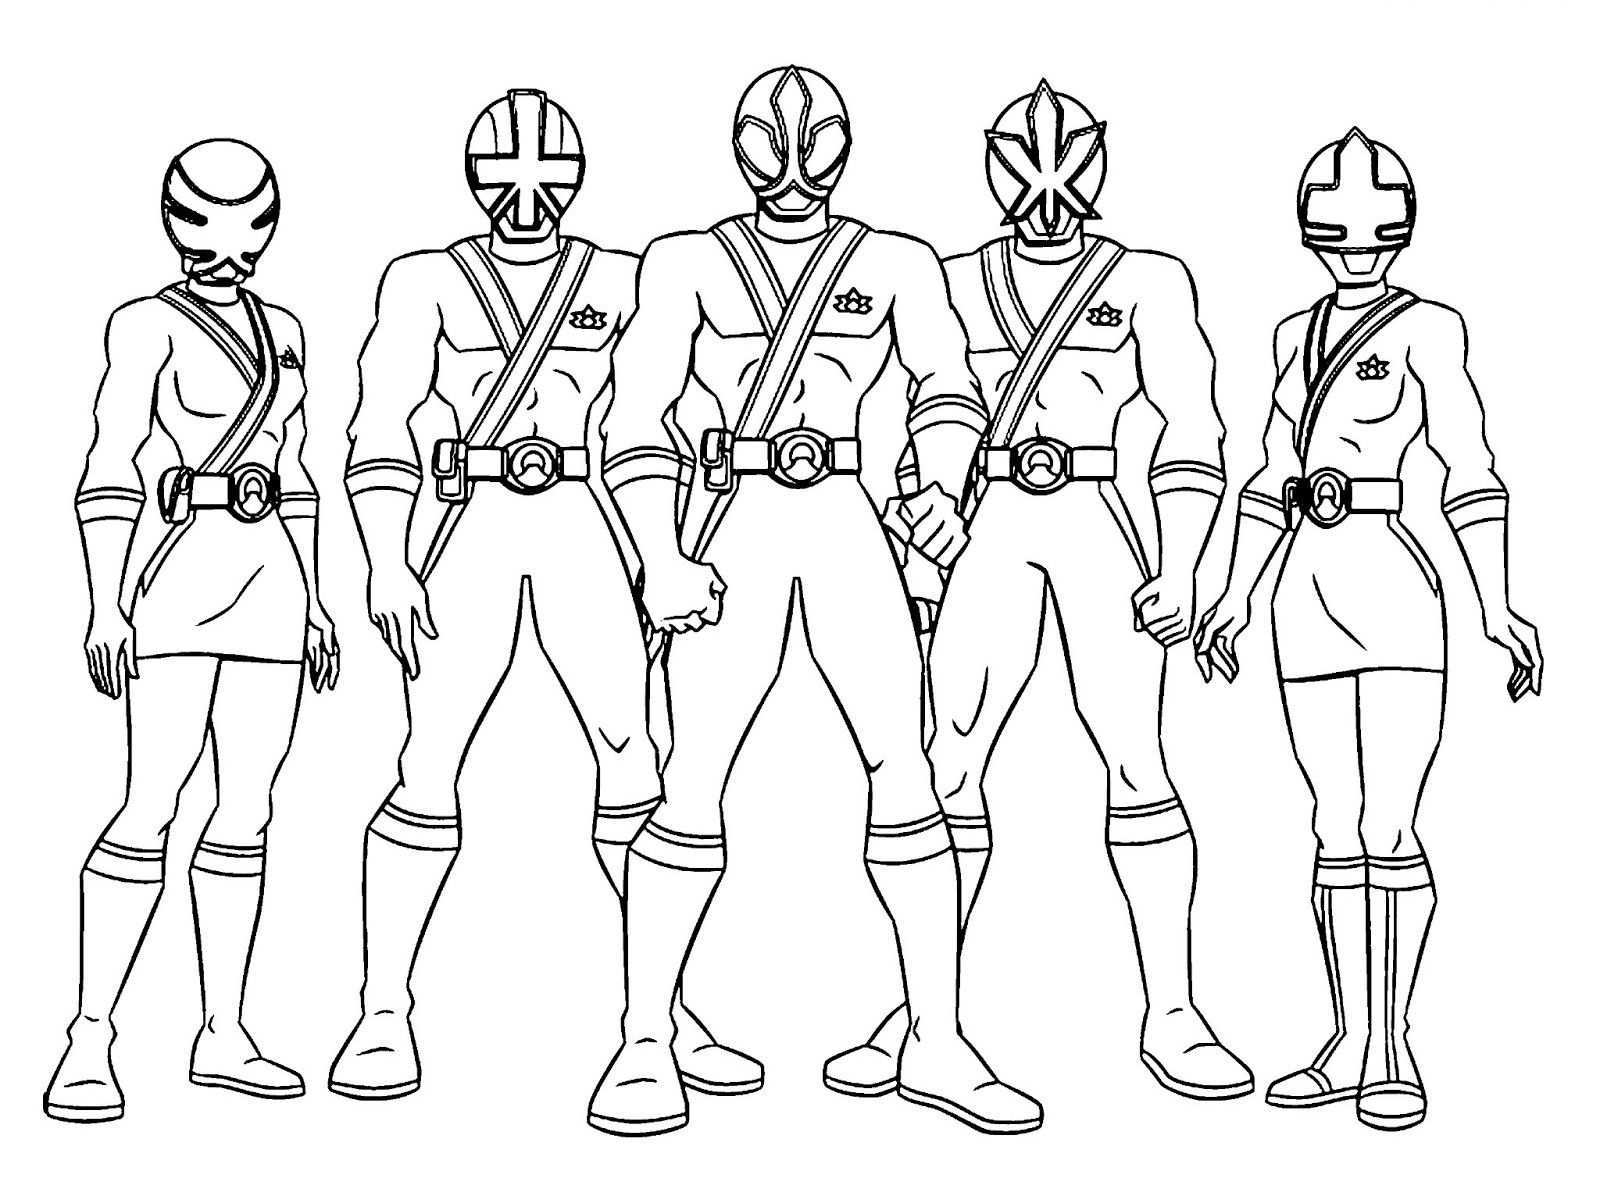 Power Rangers Coloring Pages 04 Power Rangers Coloring Pages Power Rangers Power Rangers Dino Charge